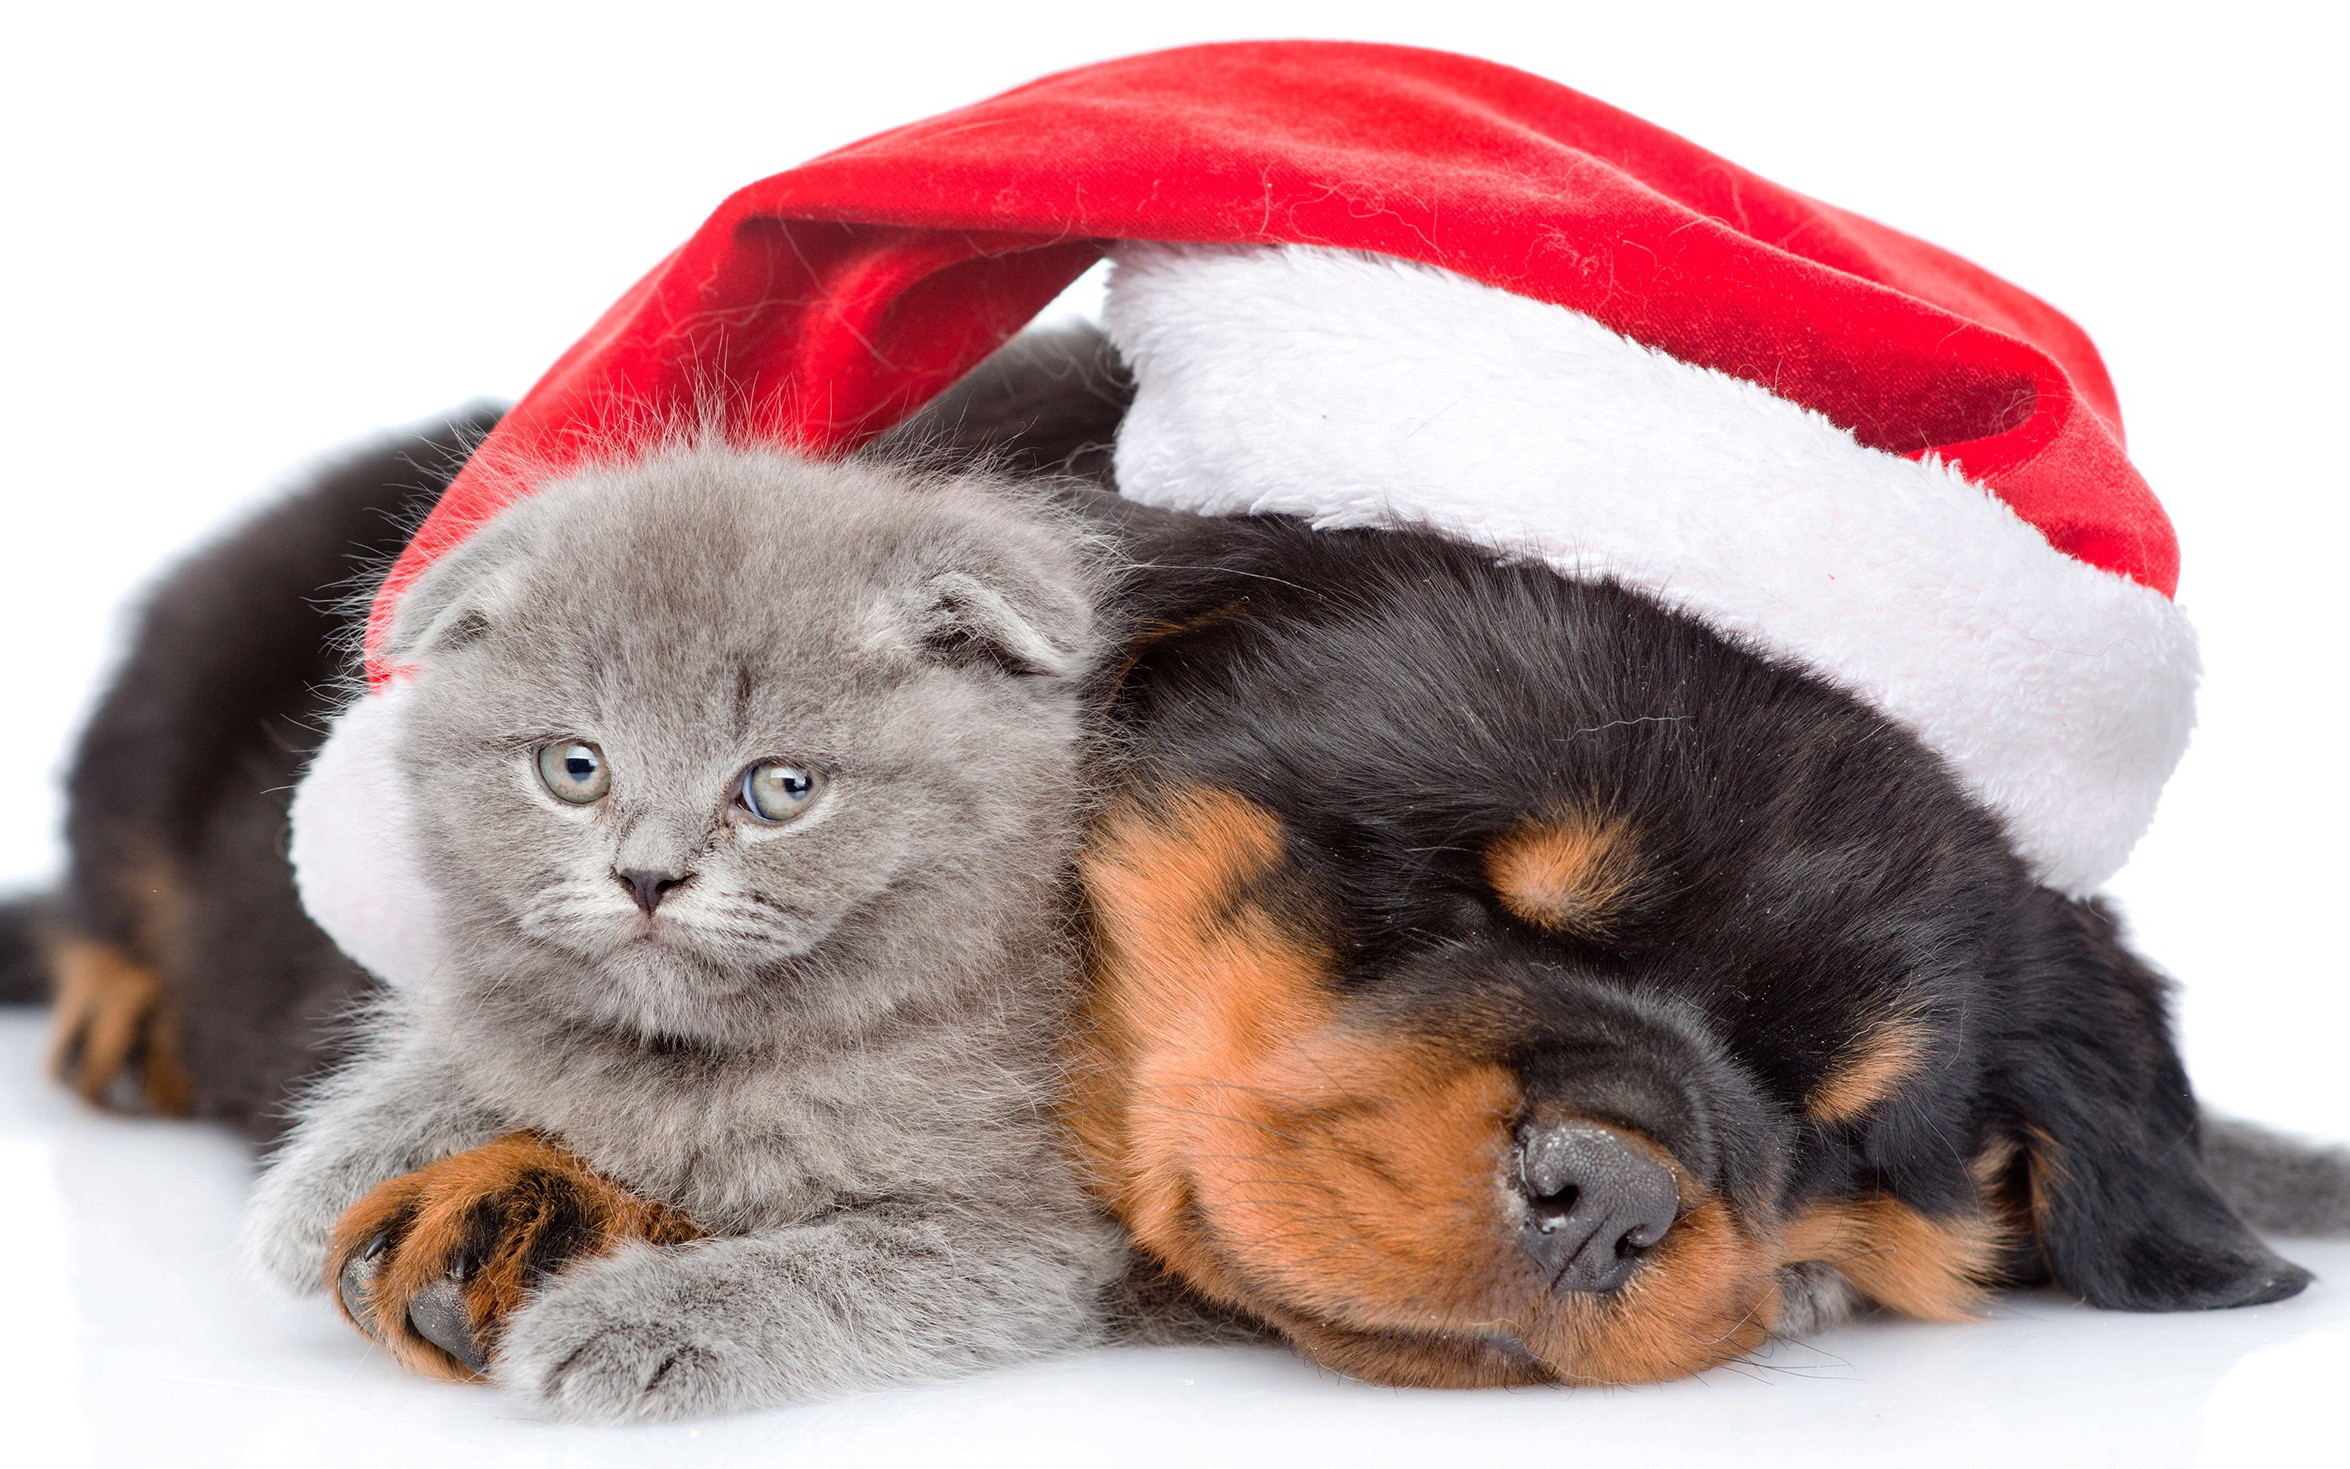 2350x1469 Animal - Cat & Dog Holiday Christmas Puppy Kitten Cute Santa Hat Wallpaper